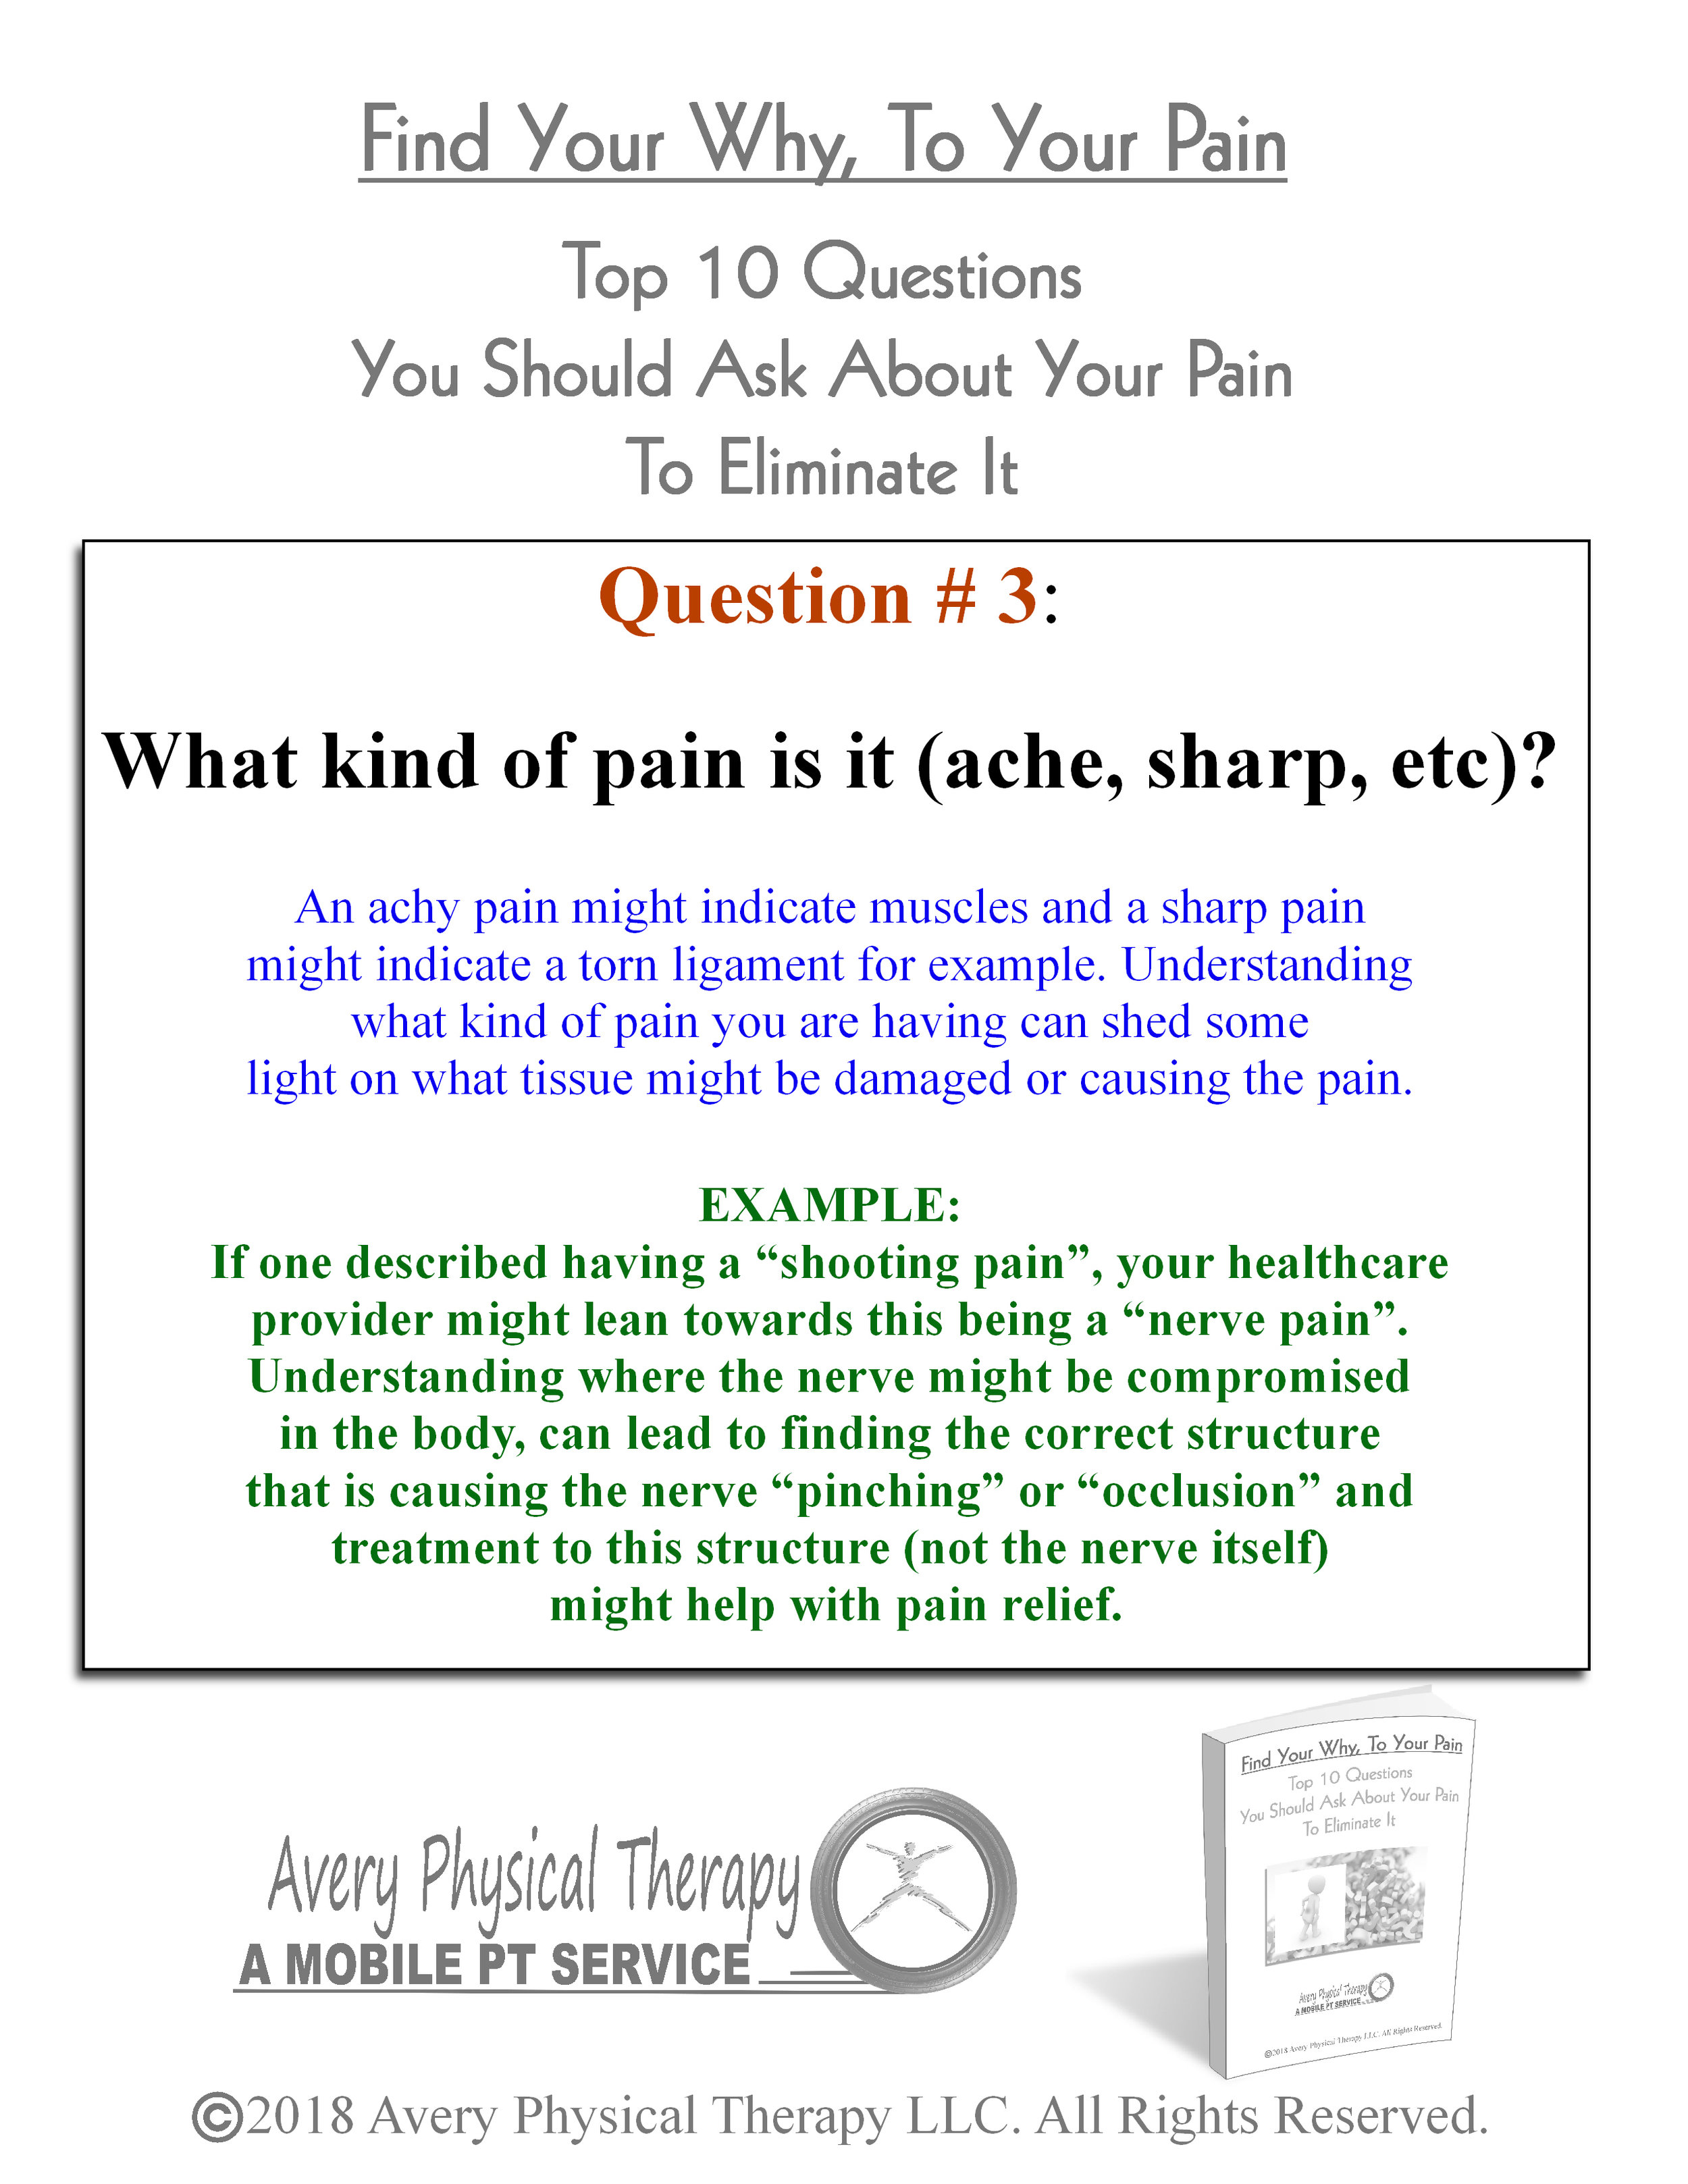 Top 10 Pain Questions 1-3F.JPG